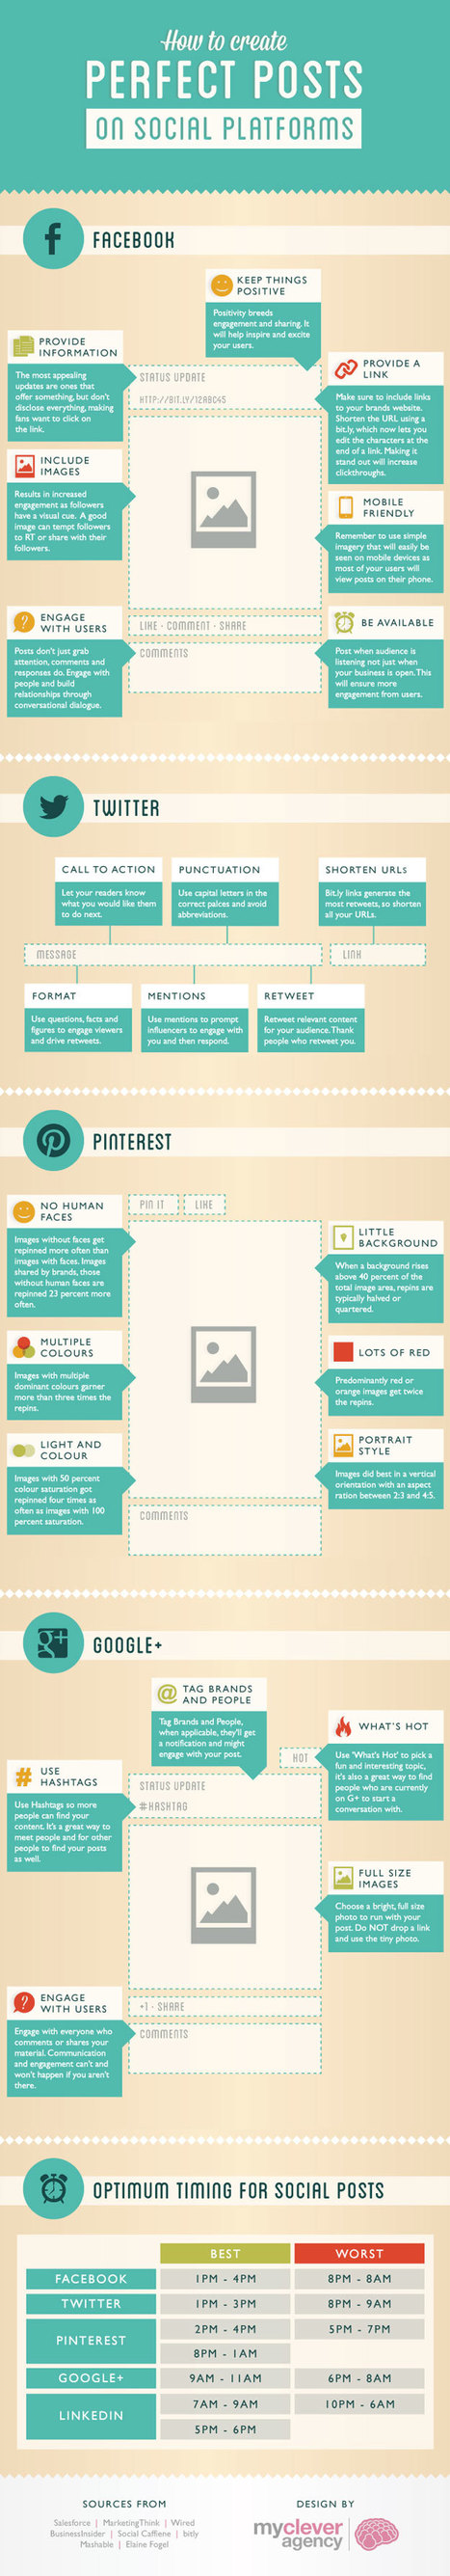 How To Create Effective Posts On The 4 Main Social Sites [Infographic] | DV8 Digital Marketing Tips and Insight | Scoop.it